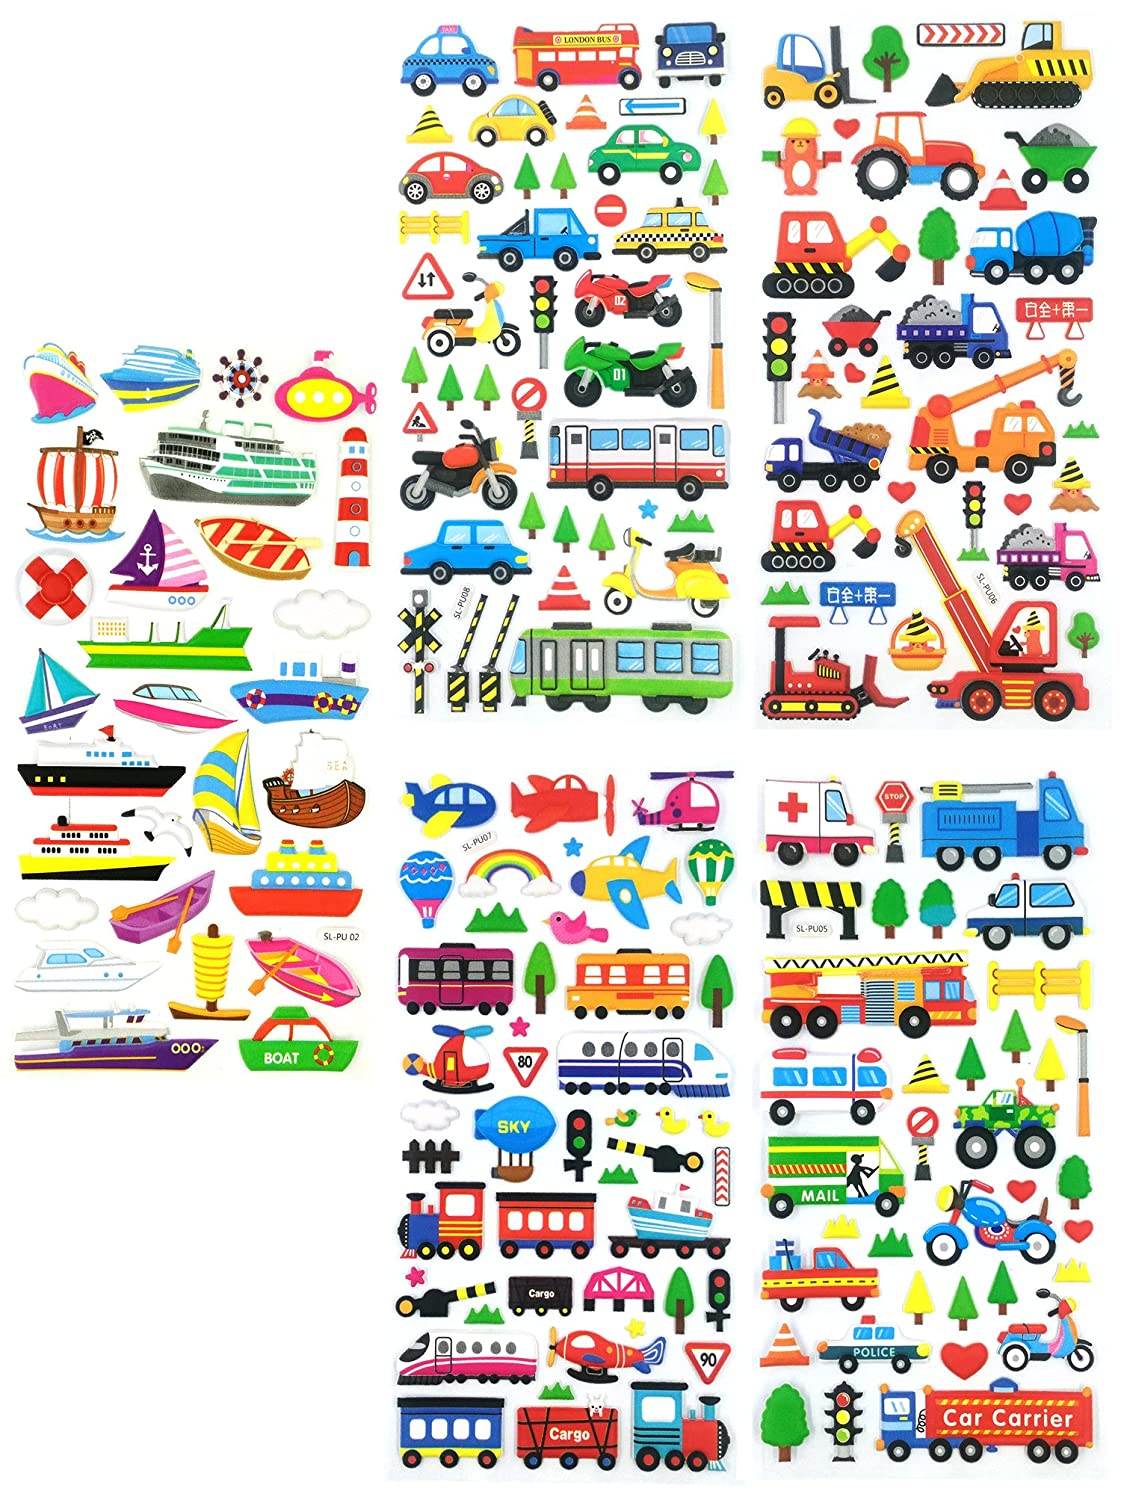 Size 3.75 X 7.5 Inch.//sheet TRANSPORT18-5 Sheets 3D Stickers For Kids Puffy Dimensional Stickers - - Vehicle Stickers Car, Bus, Airplane, Jet, Sailboat, Train, Marine Stickers